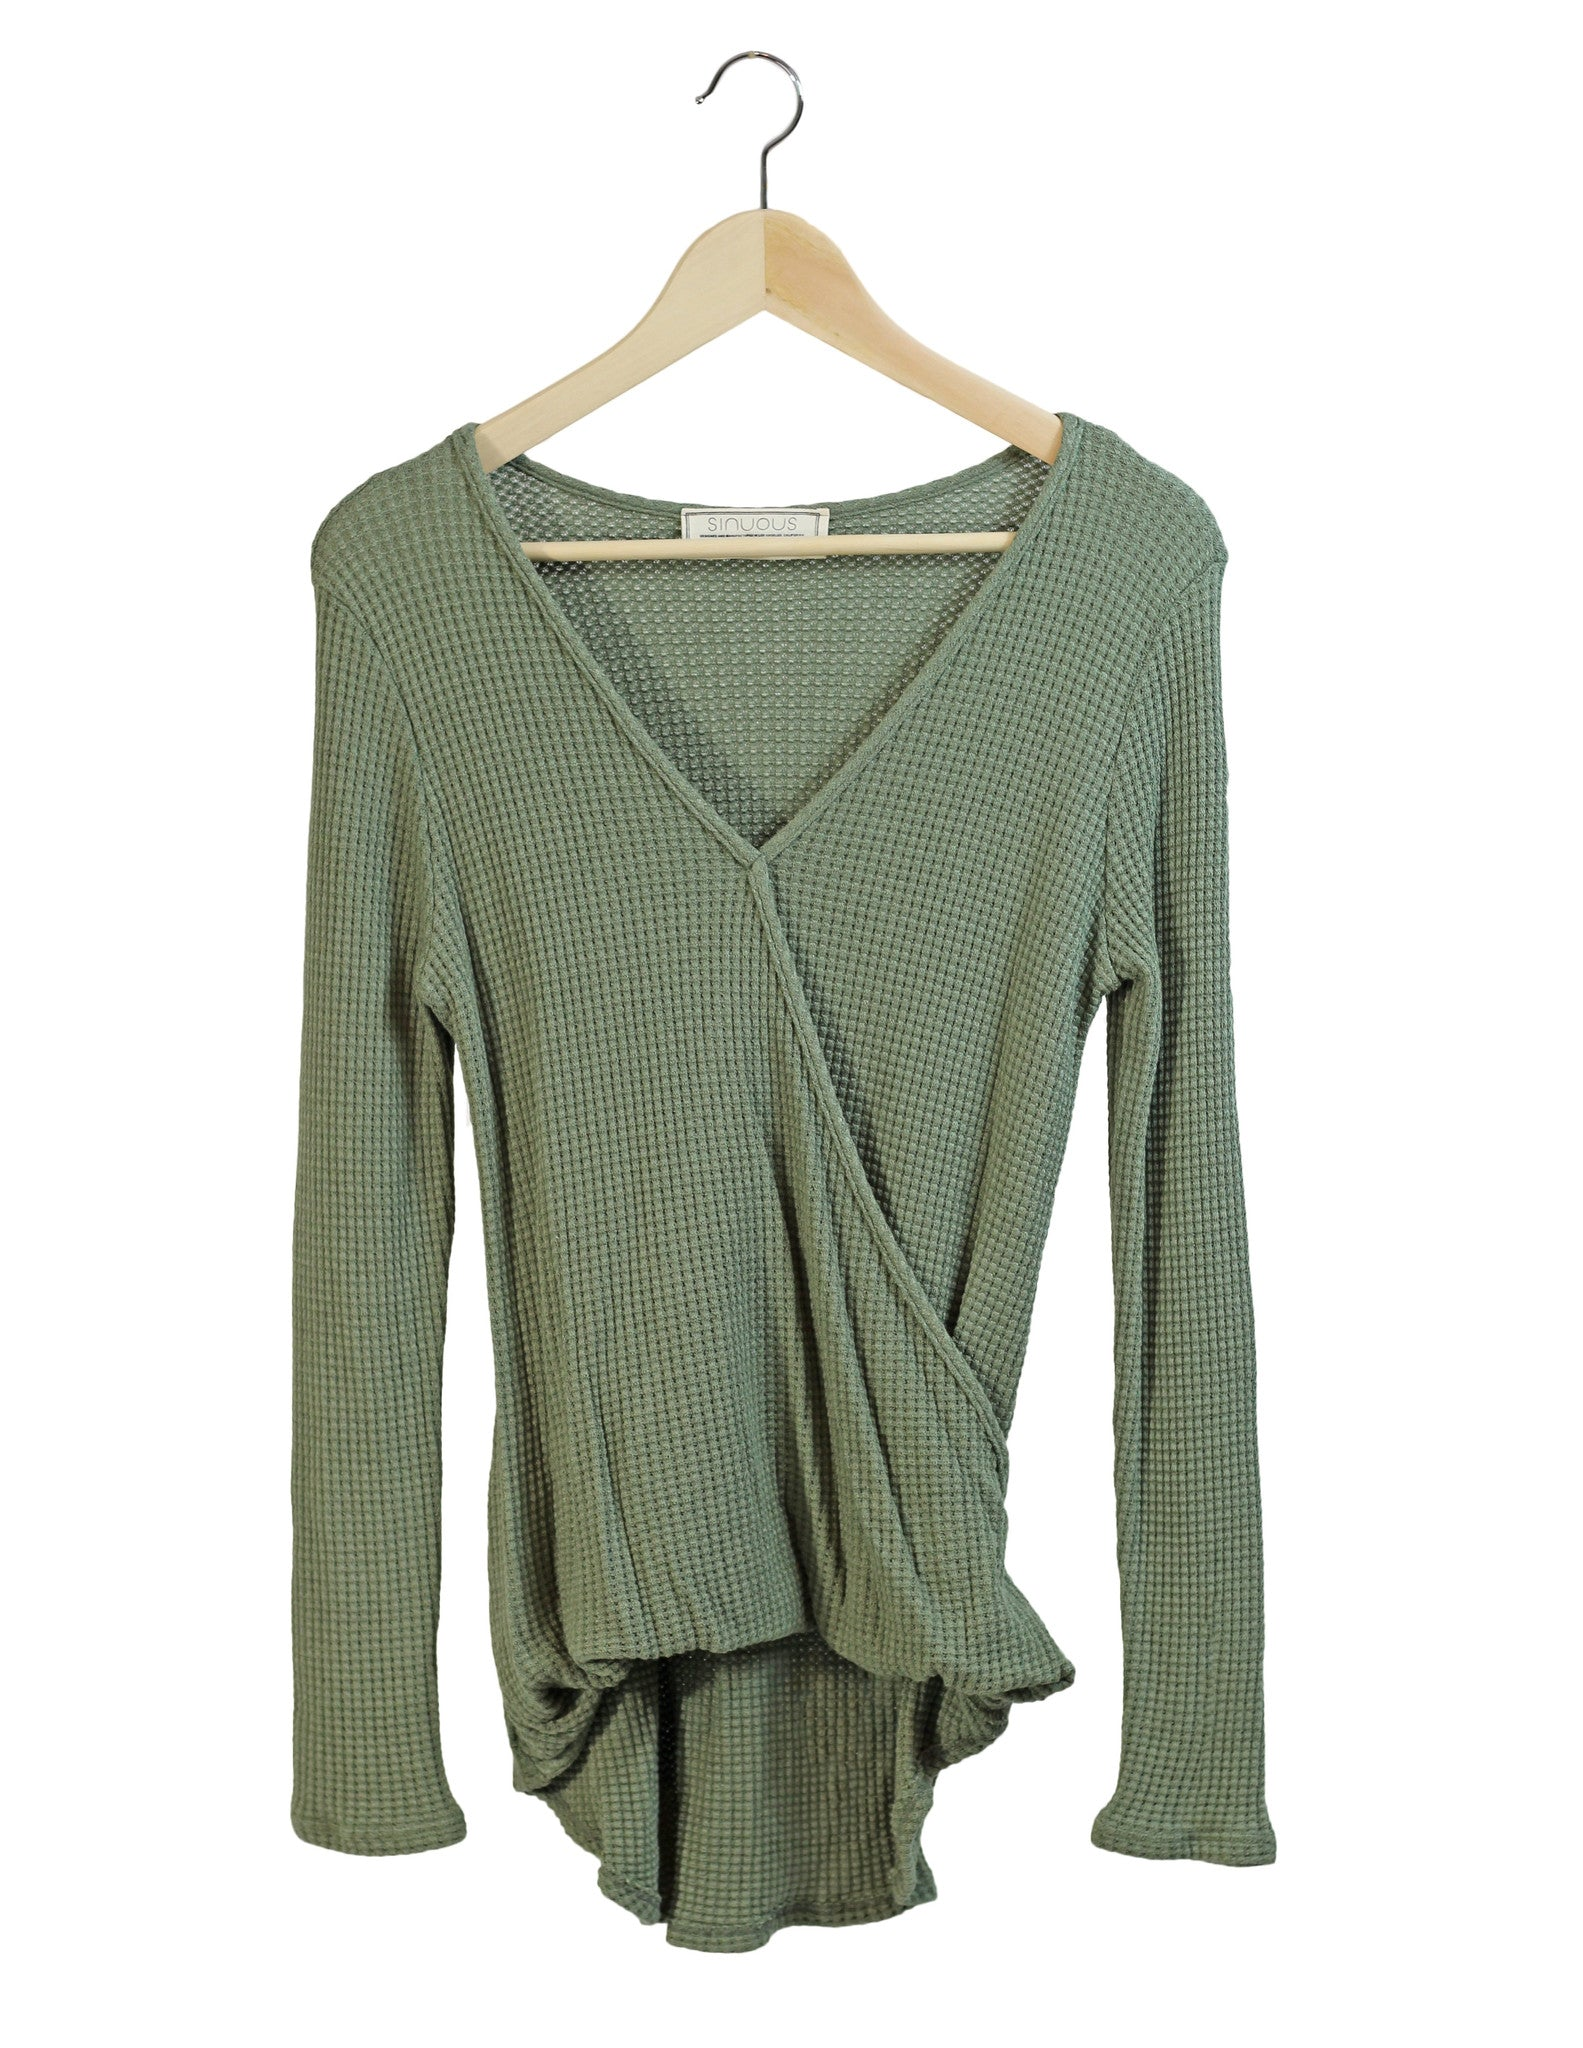 Ivy Thermal Infinity Top / Ethical Fashion